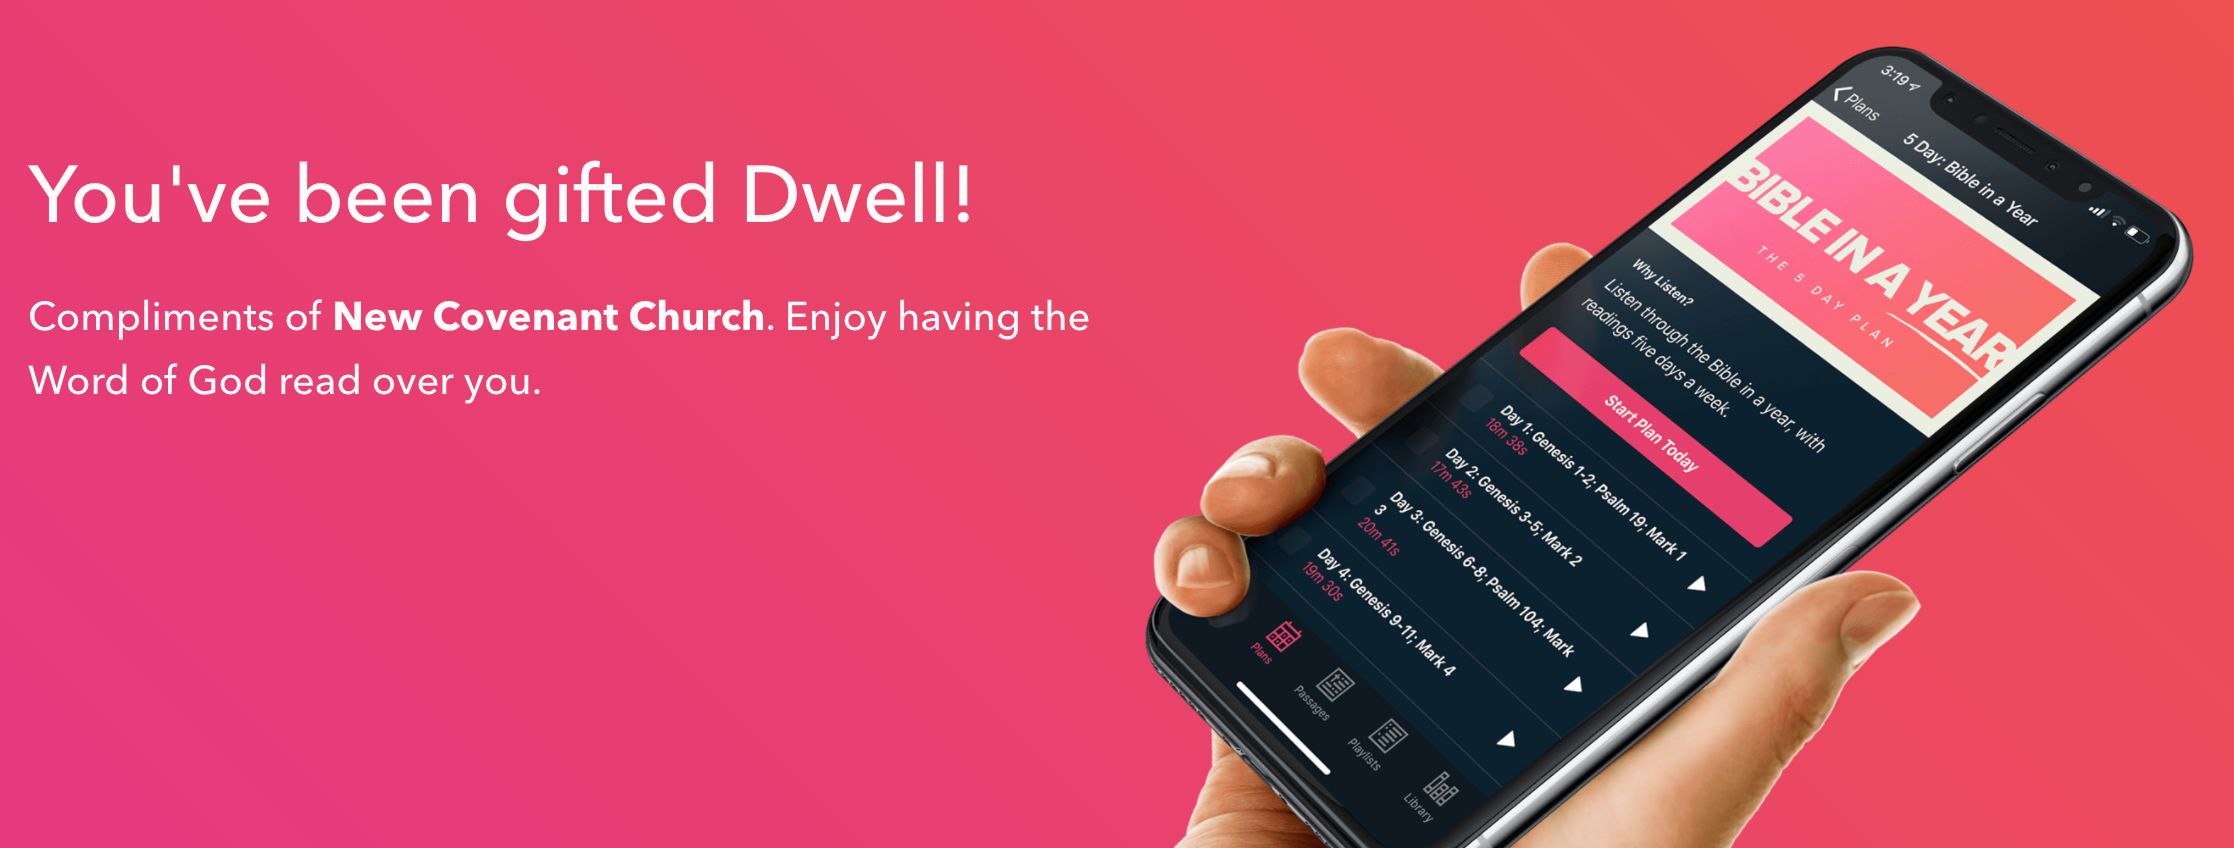 Dwell subscription page